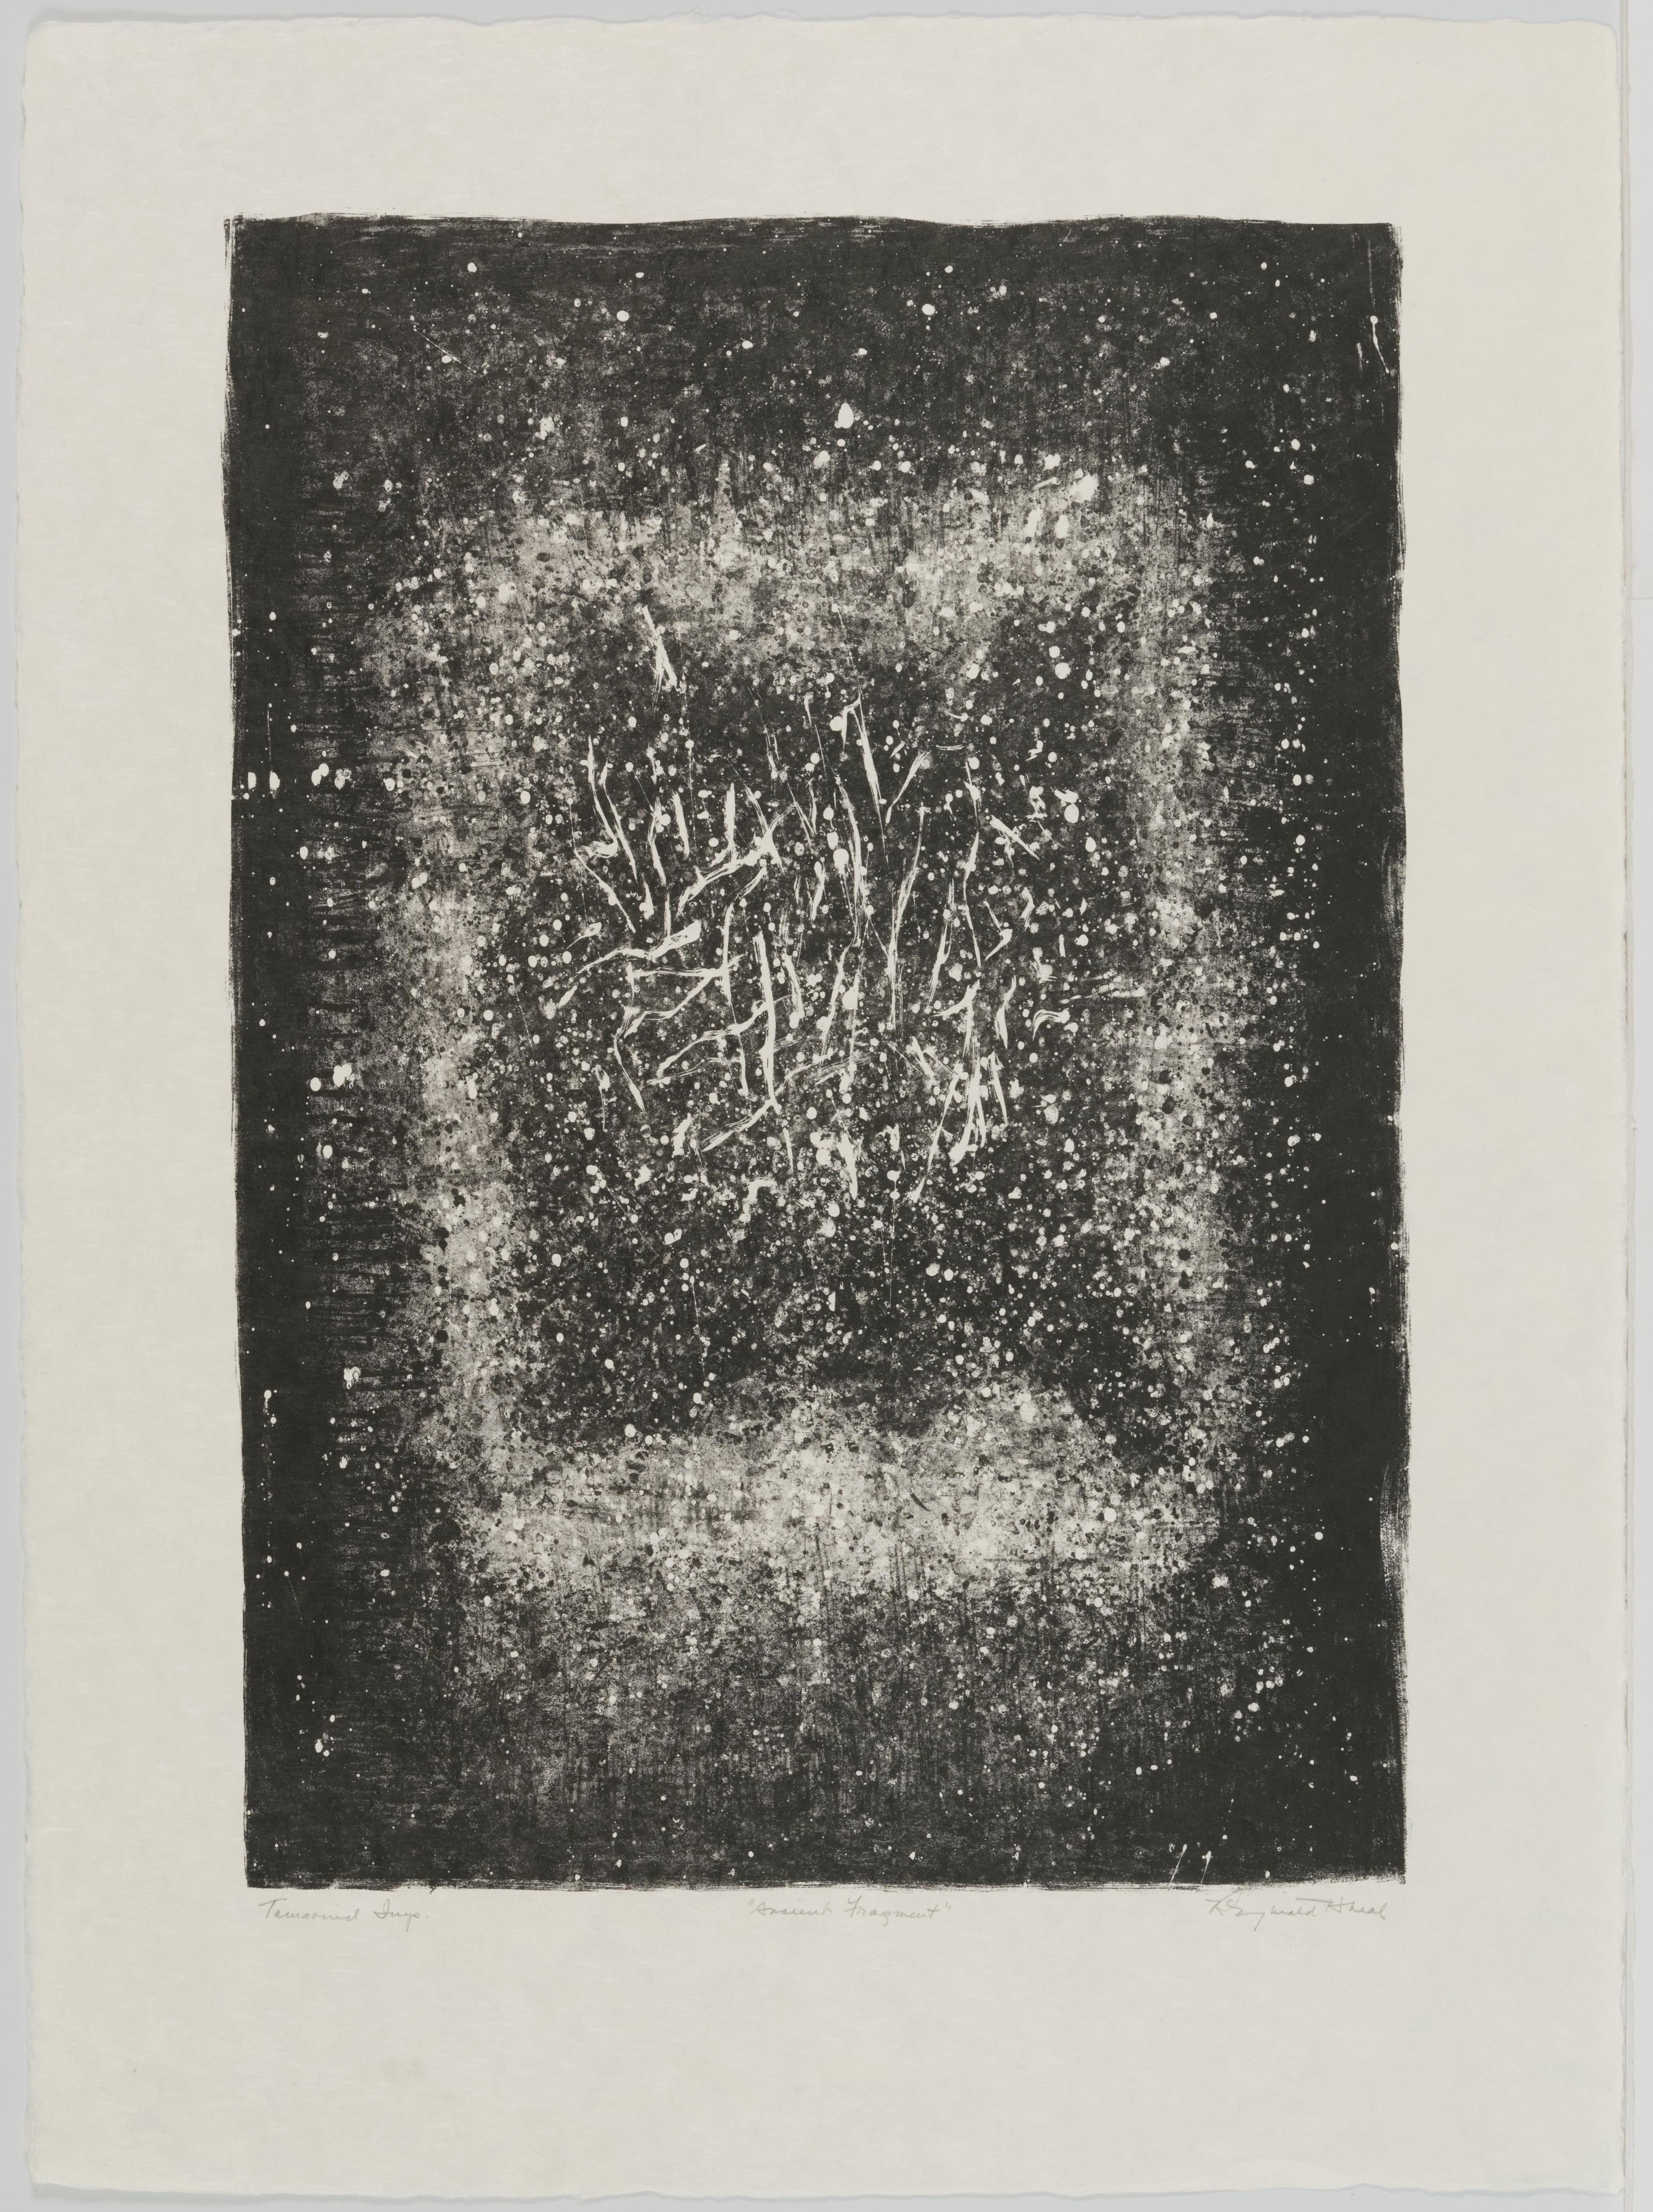 Reginald Neal, Ancient Fragment, October 11-12, 1962